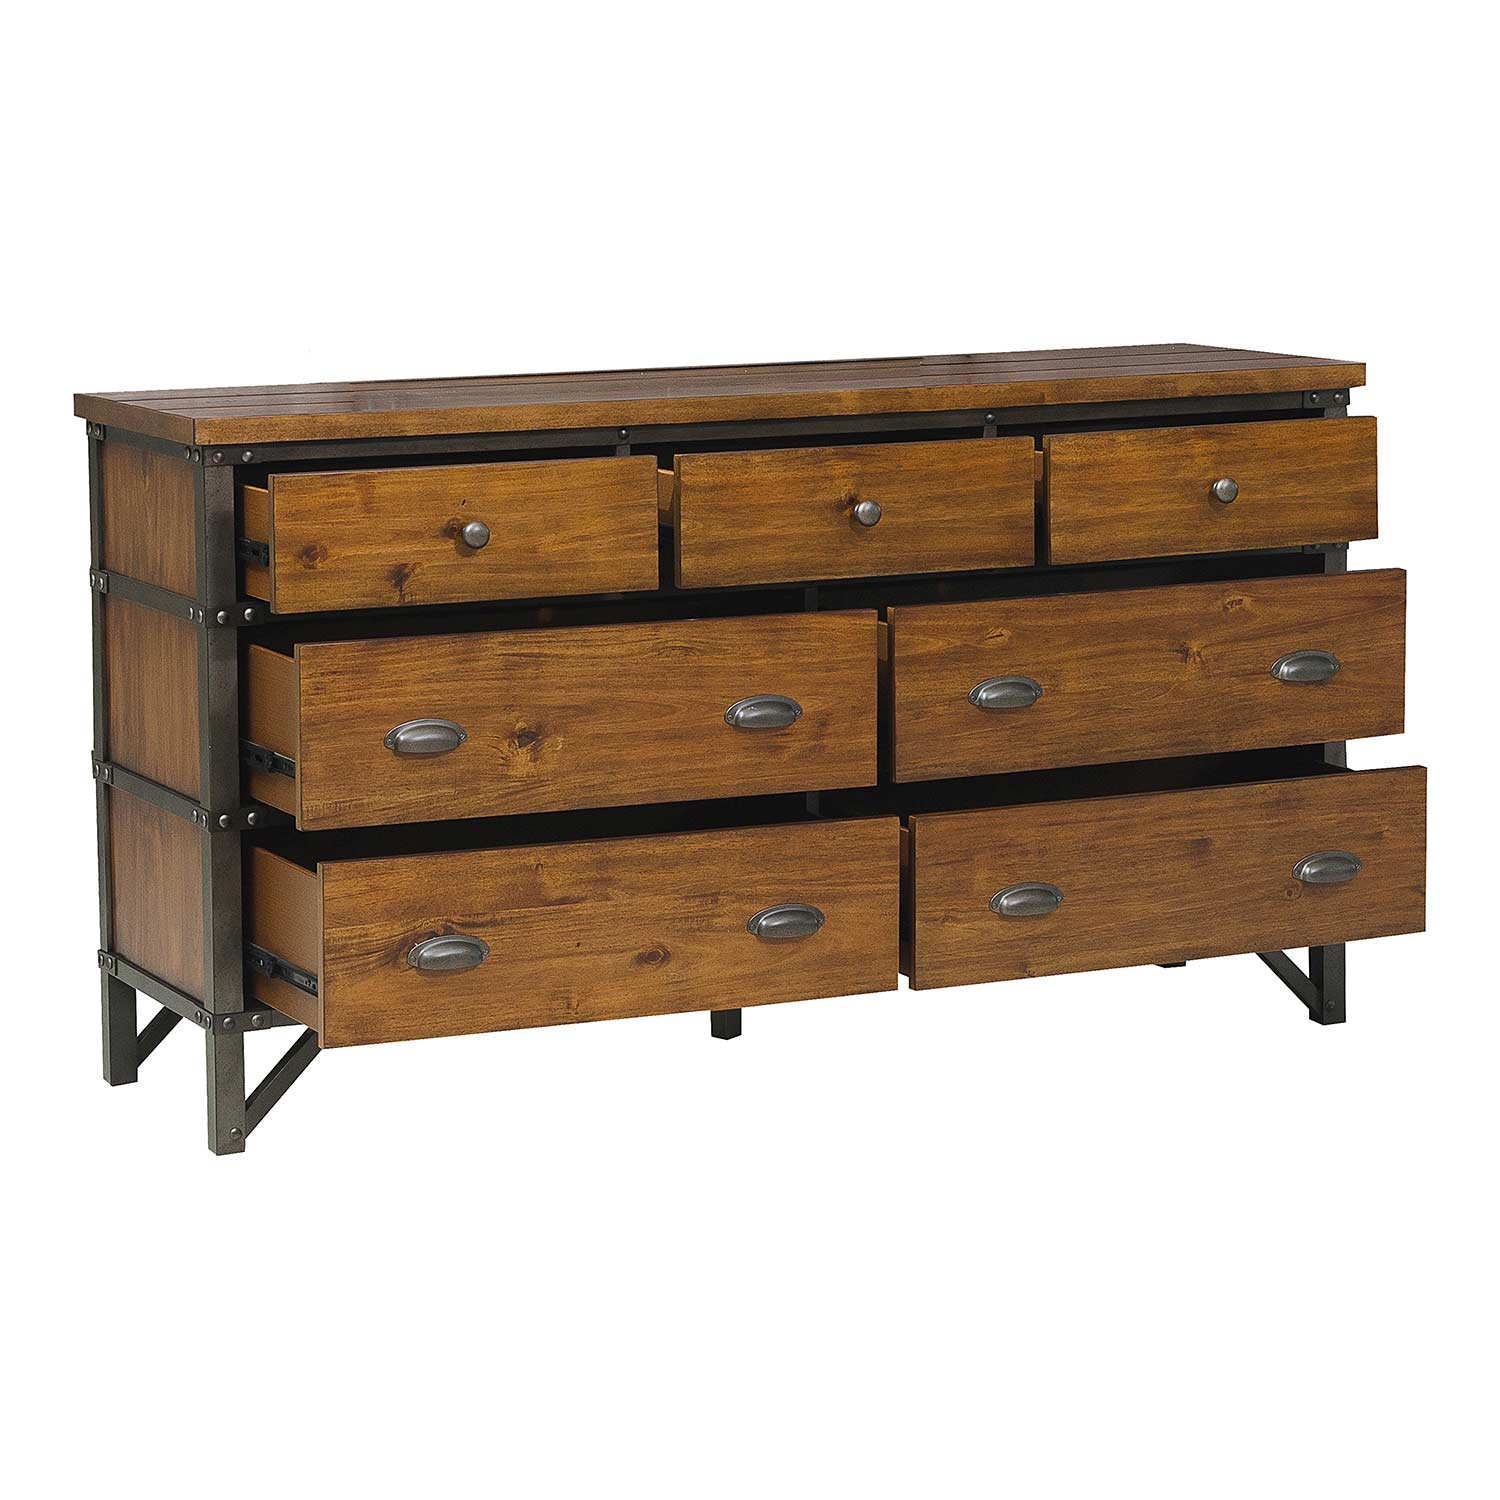 Homelegance Holverson Dresser - Rustic Brown Milk Crate Finish